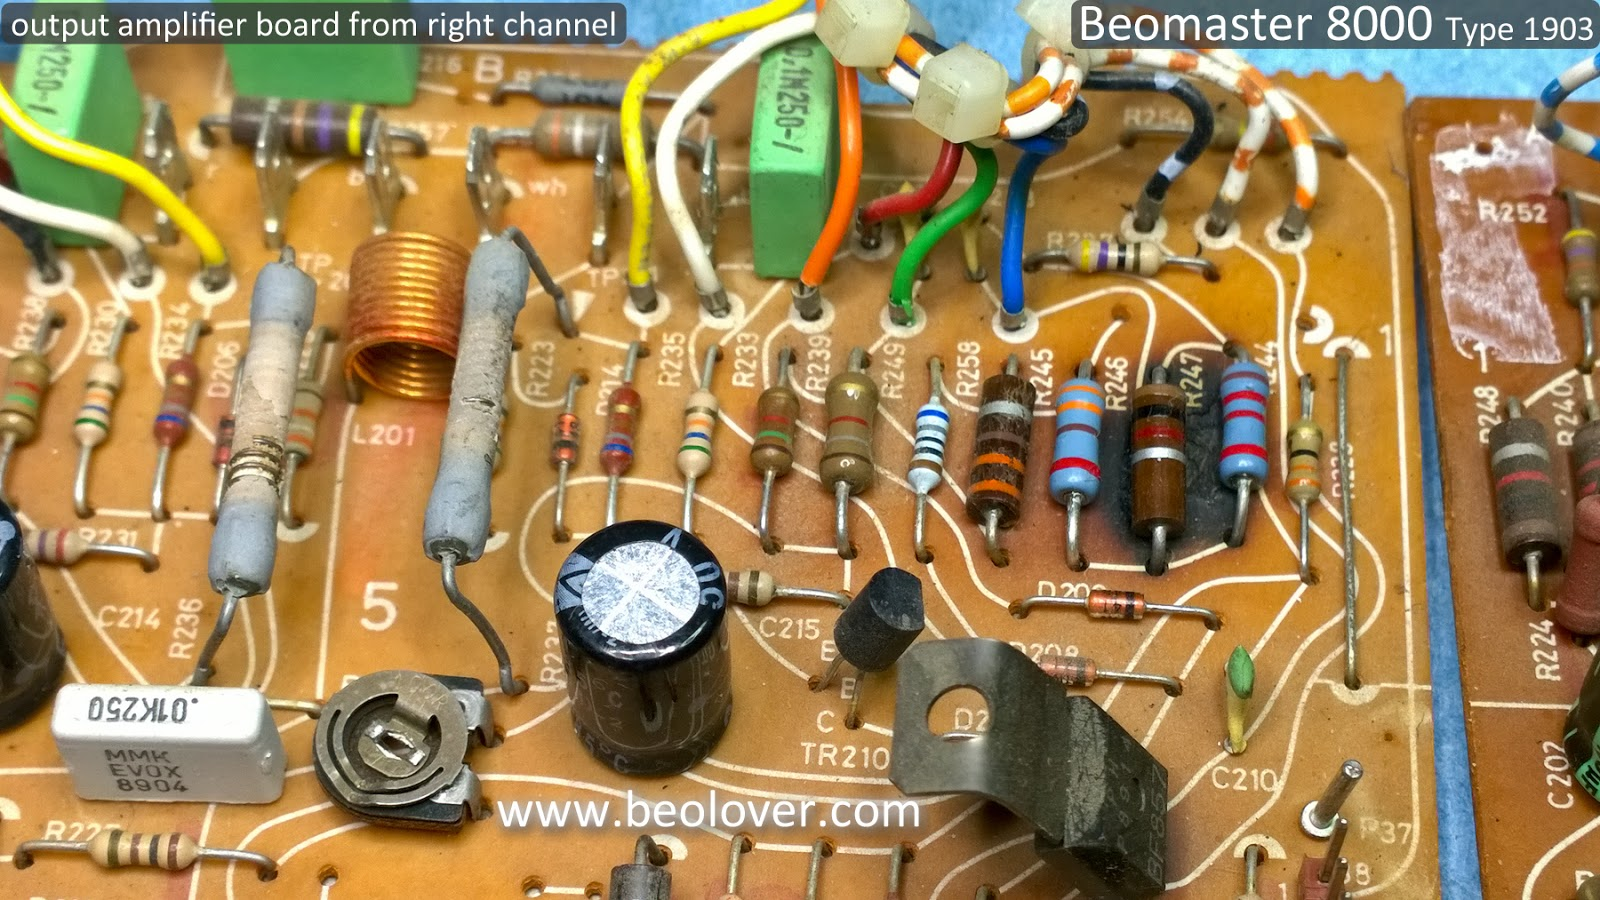 Beolover Beomaster 8000 Starting With The Output Amplifier Boards Resistor Is On Left Side Of Board Close To Heat Sink Both Show Some Darkened Places Right Channel Has A Really Bad Spot That Also Replaced Resistors